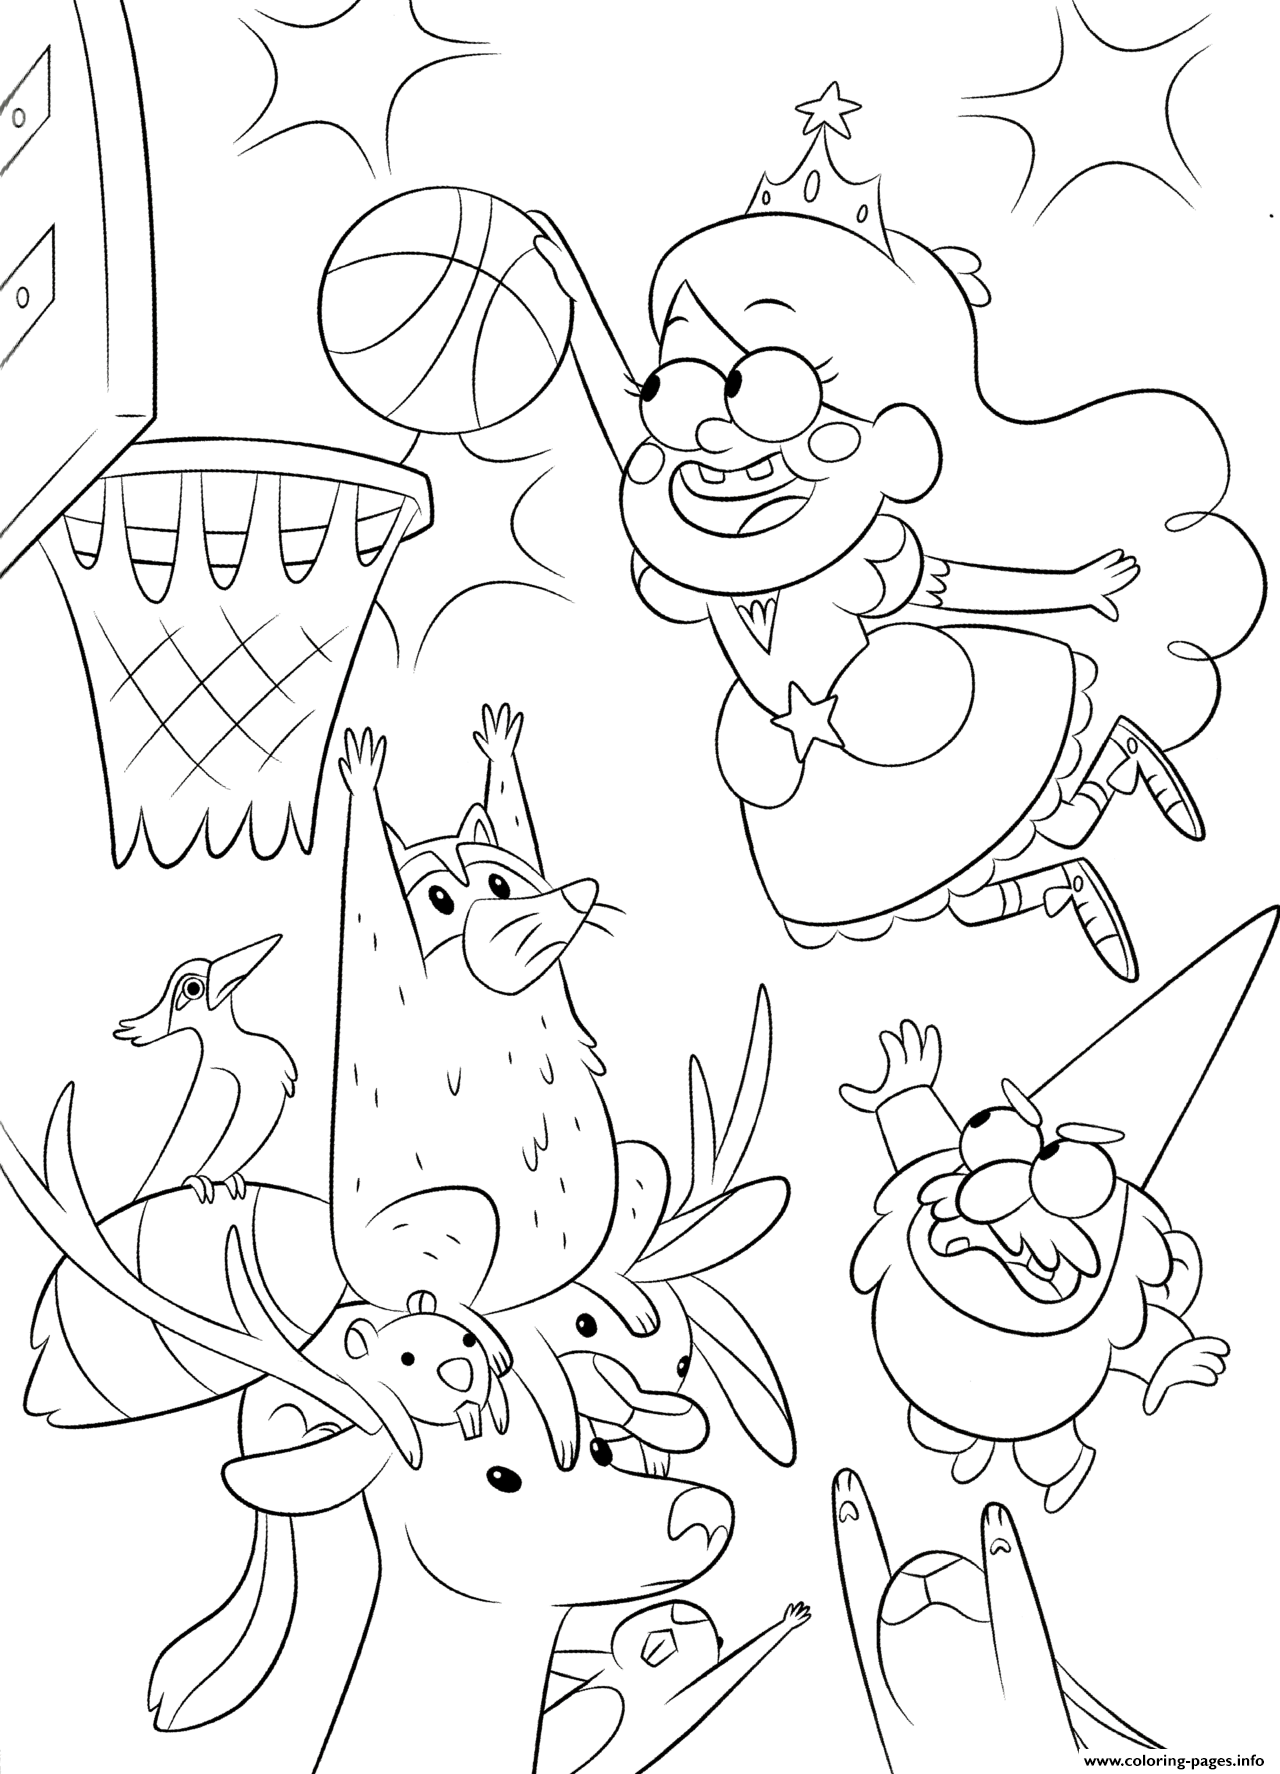 Gravity Falls Playing Basketball coloring pages